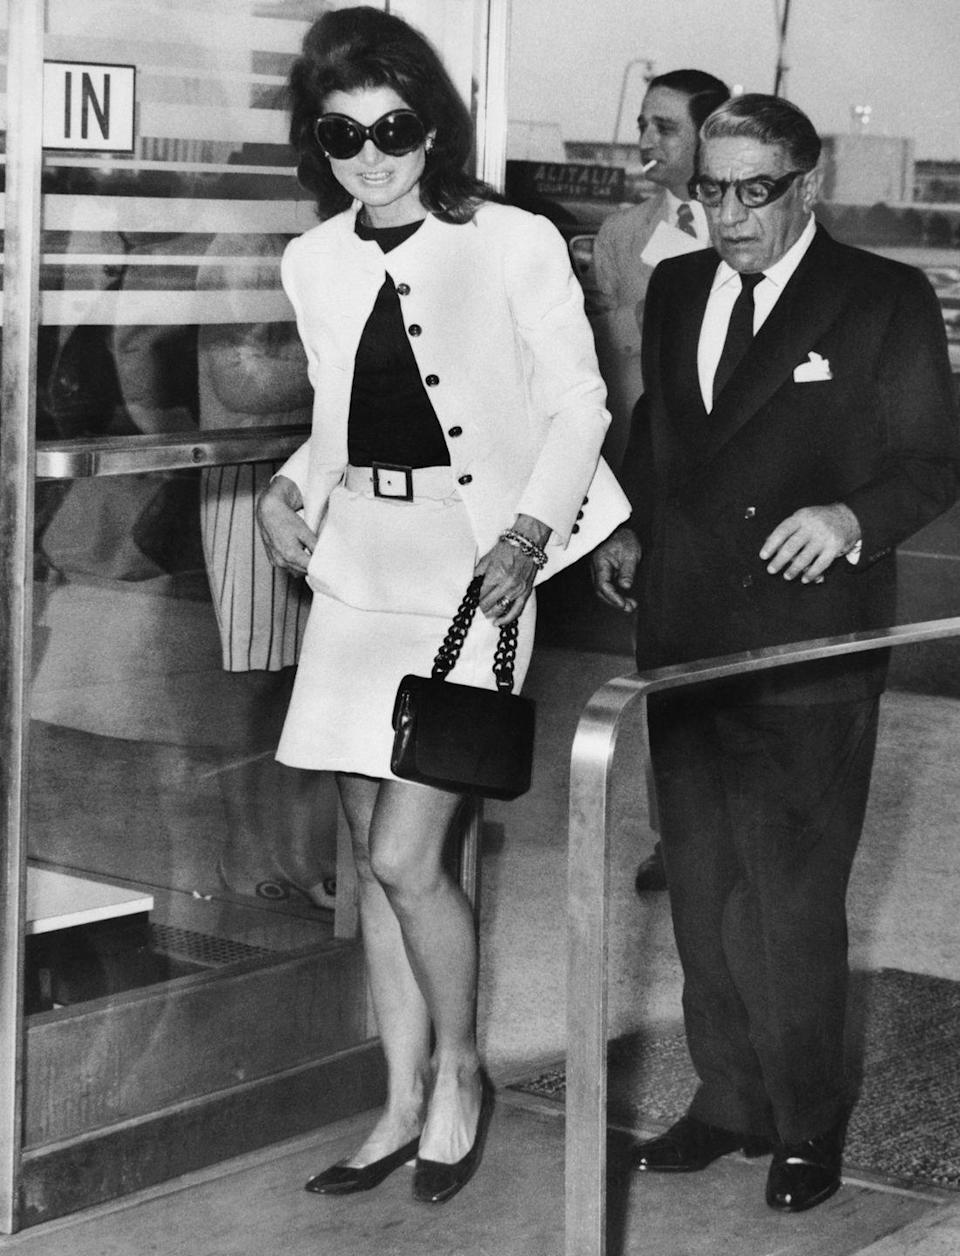 <p>A matching jacket-and-skirt set paired with a small black handbag and black leather heels make for an elegant outfit for bidding Aristotle Onassis goodbye at the Kennedy Airport.<br></p>